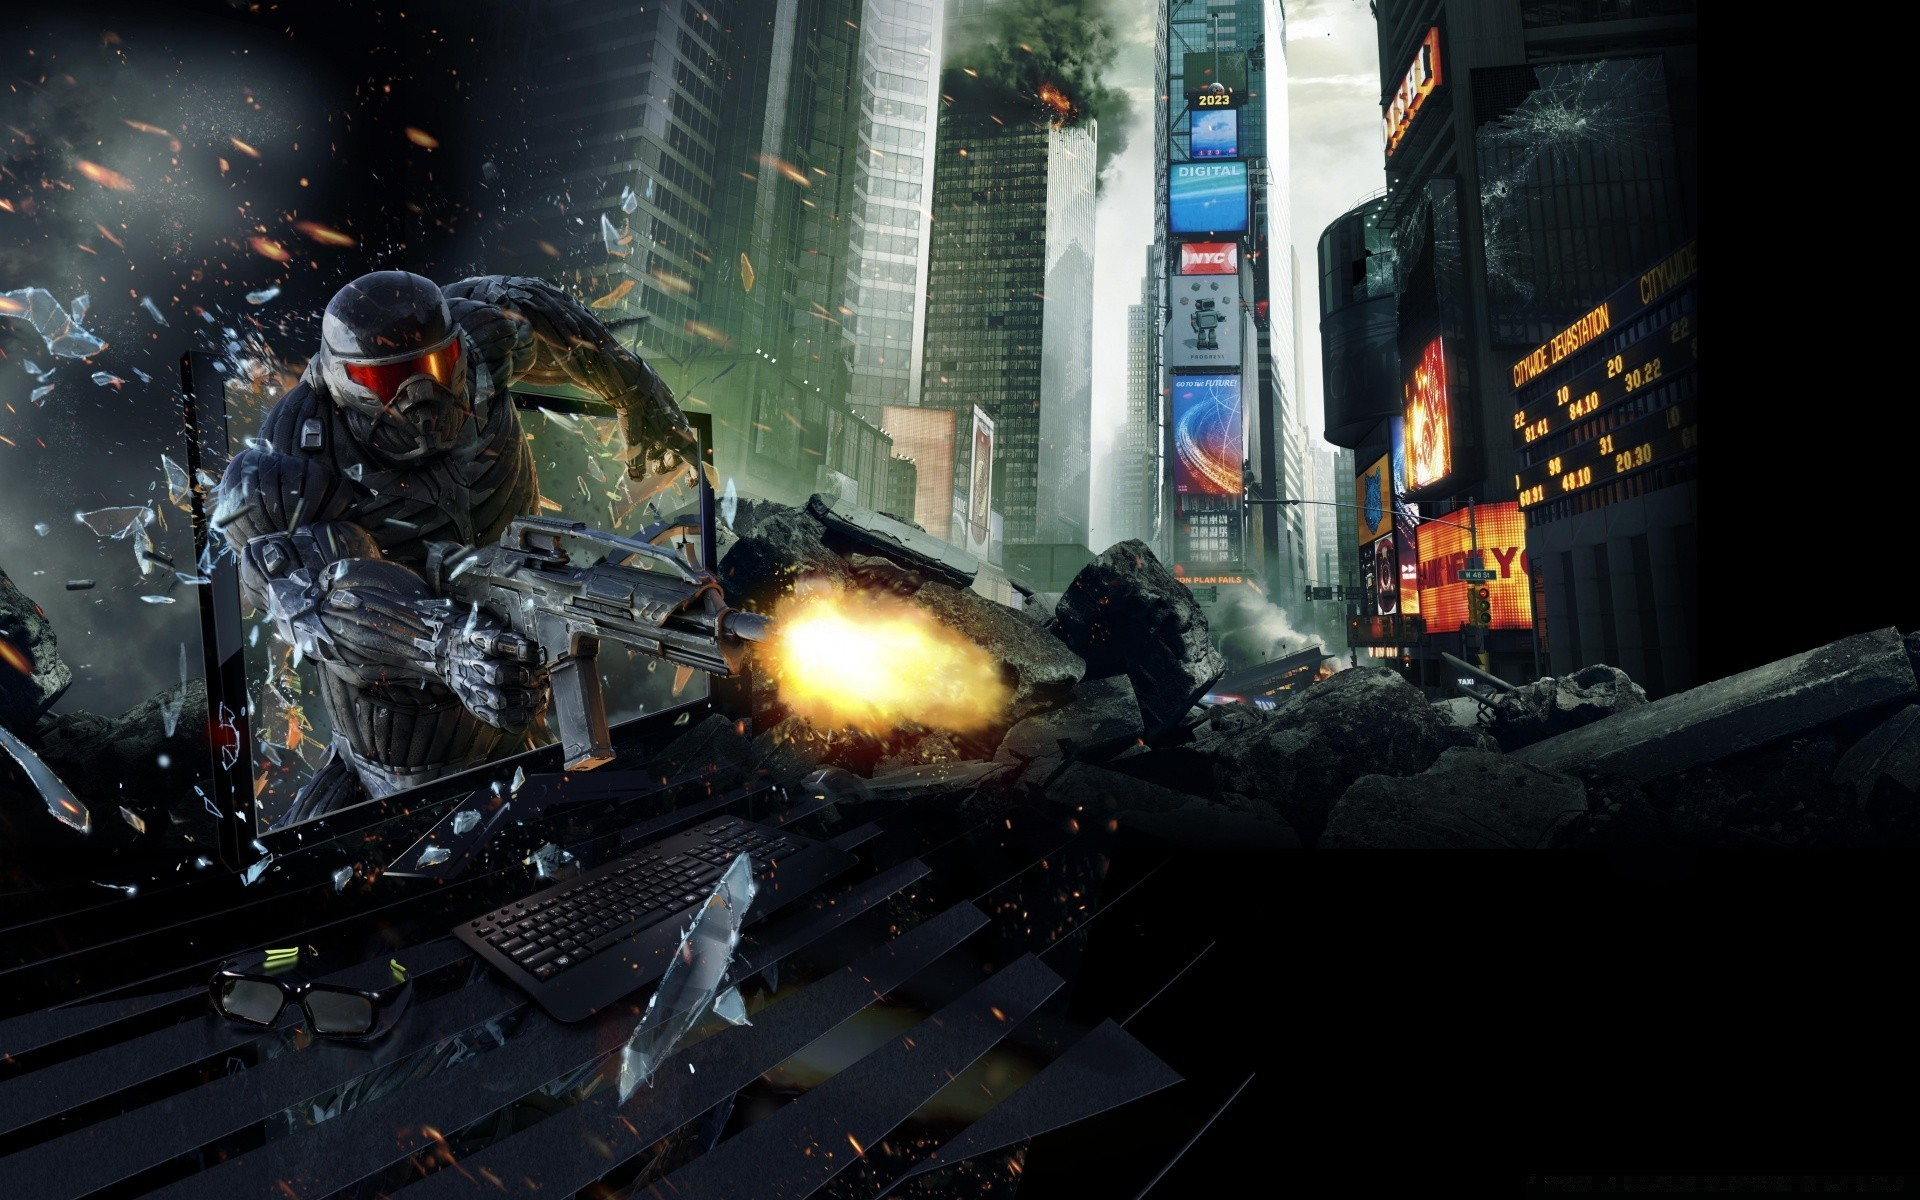 Crysis 2 - NVIDIA GeForce GTX 560 Ti